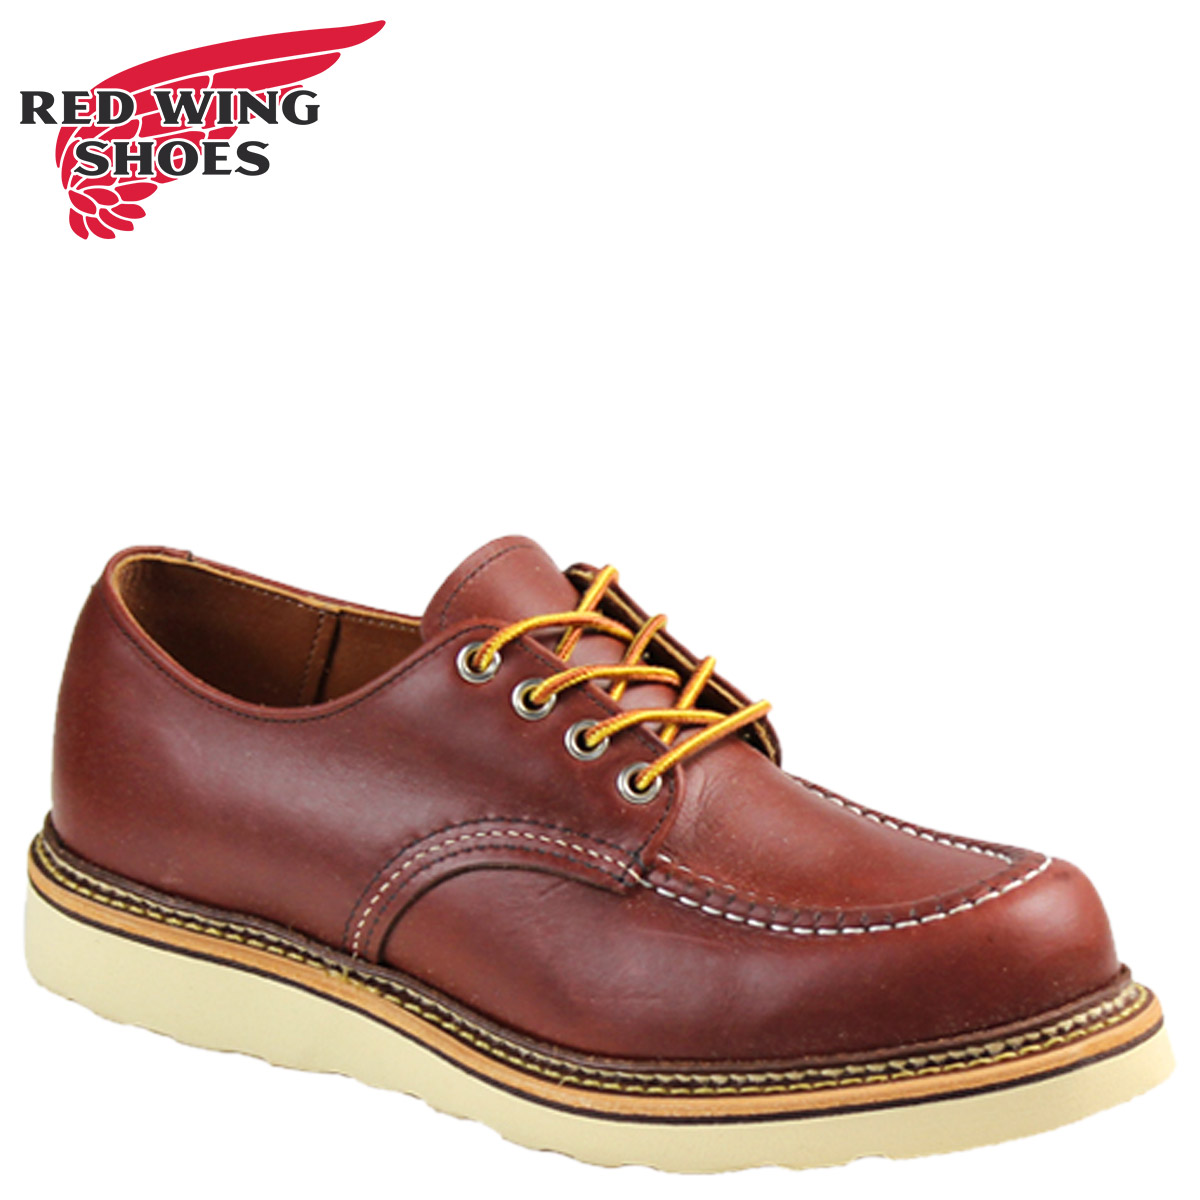 ALLSPORTS | Rakuten Global Market: Redwing RED WING shoes Oxford ...